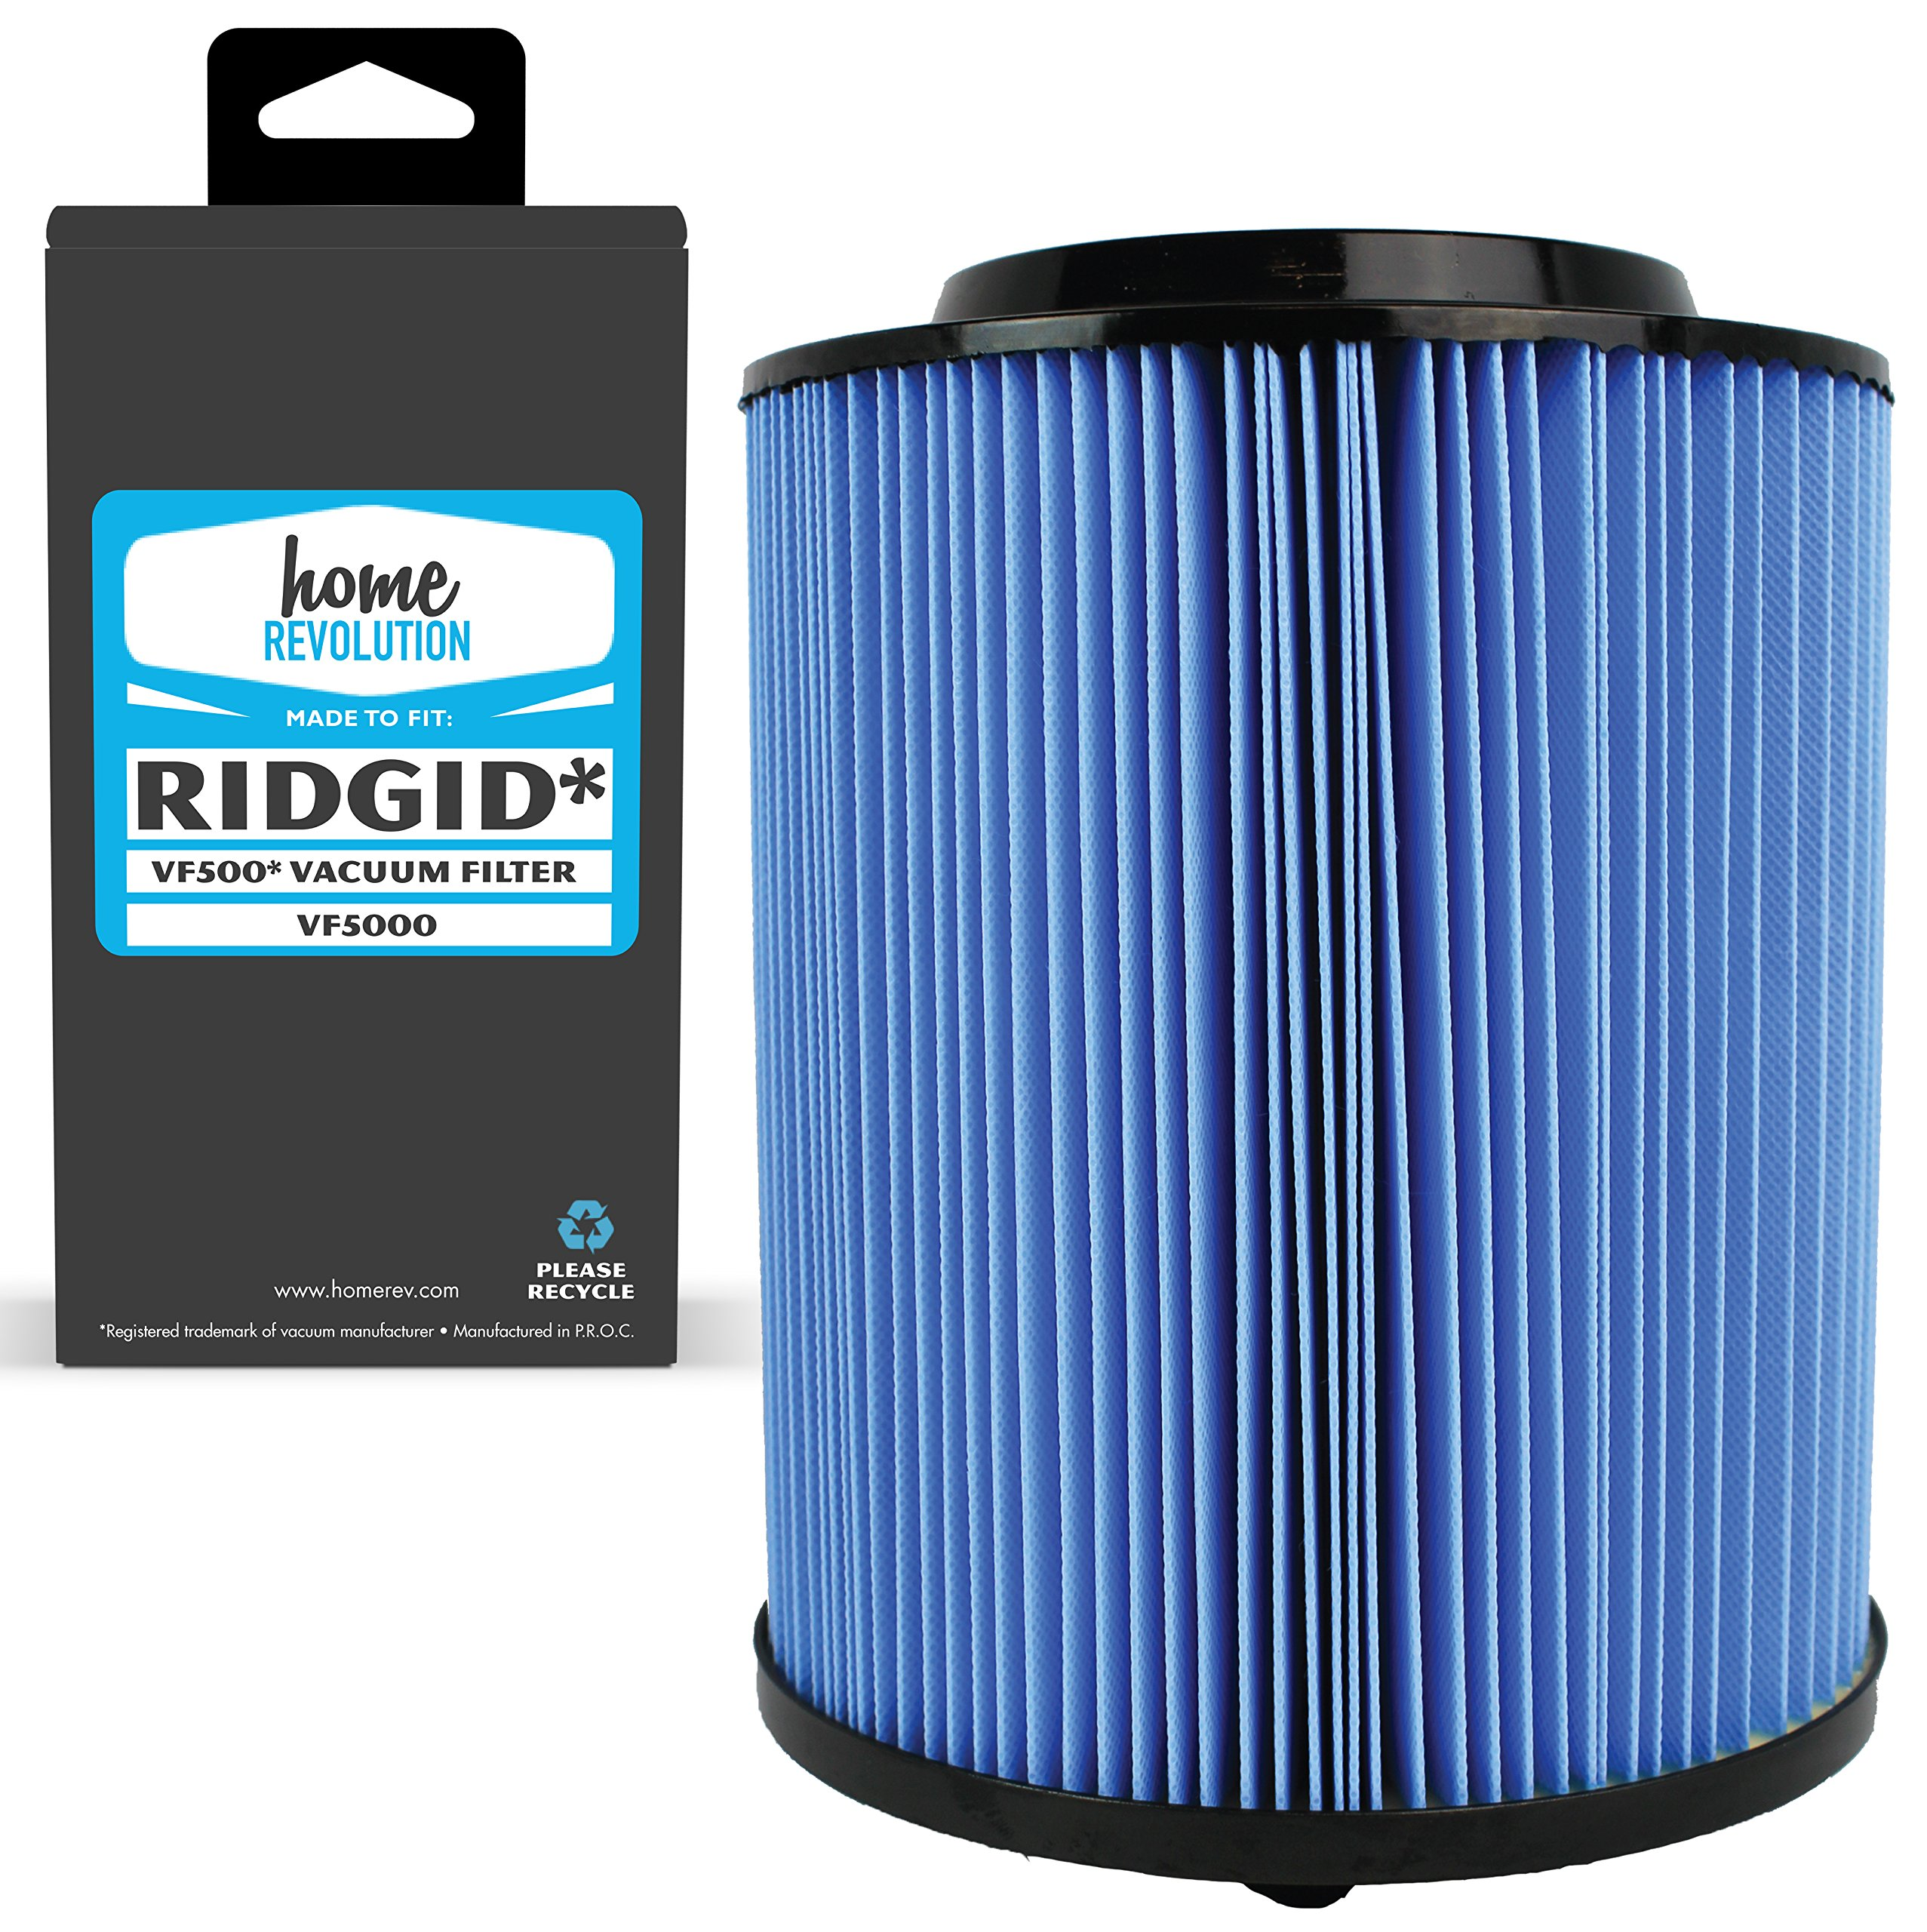 Home Revolution Replacement Shop Vac Cartridge Filter, Fits Rigid 6-20 Gallon Wet & Dry Vacuums and Part VF5000